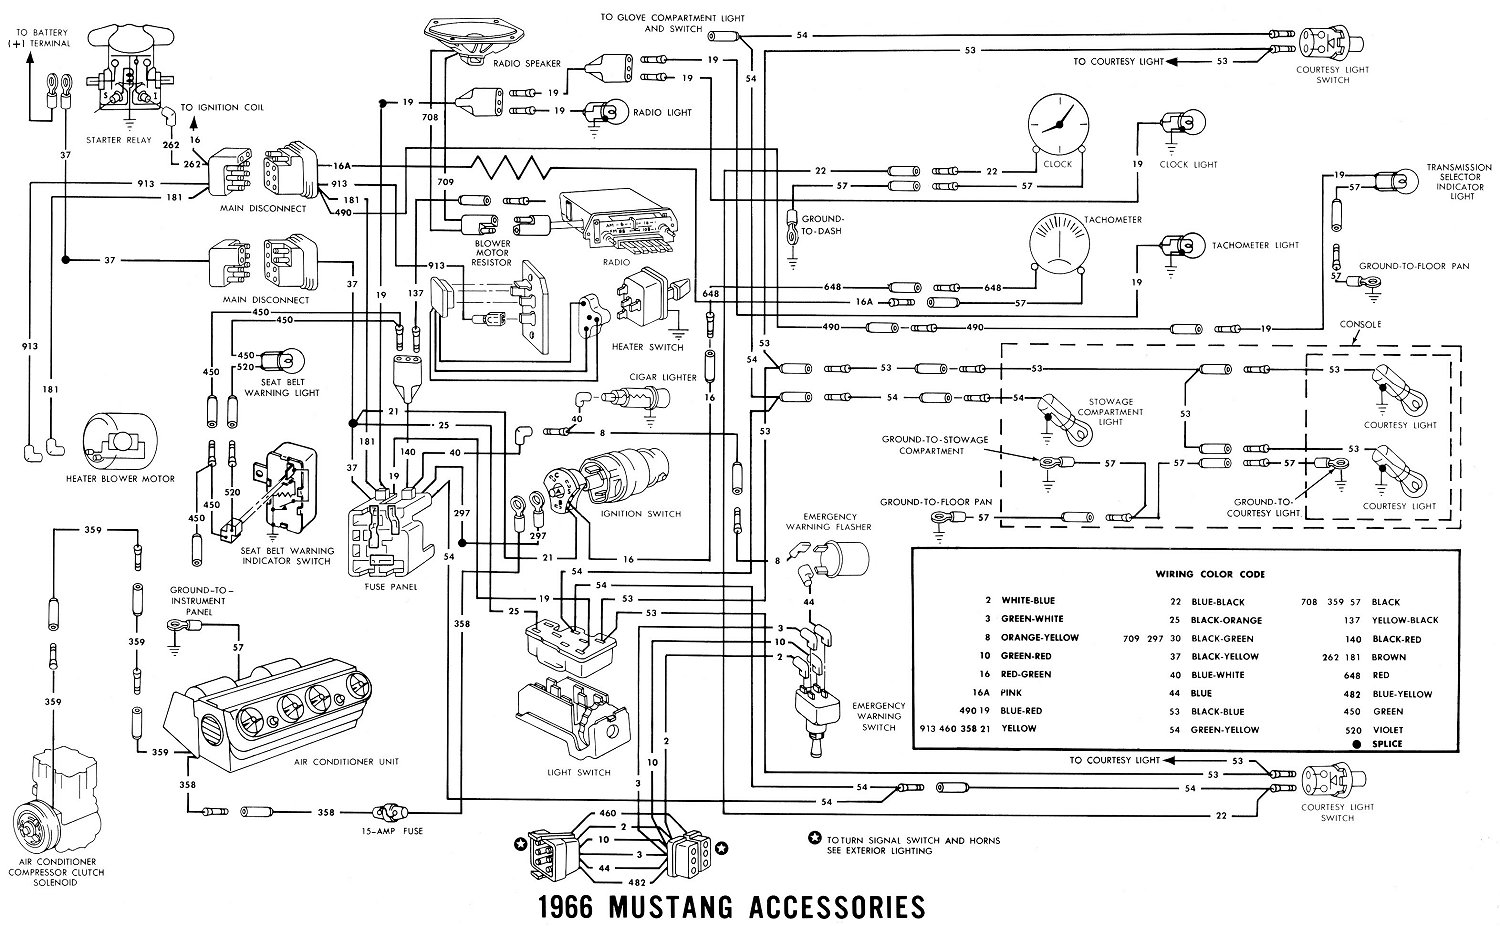 1966 Ford Mustang Accessories Wiring Diagram 1968 ford f100 wiring diagram 1965 ford f100 alternator wiring 1966 ford truck wiring diagram at n-0.co